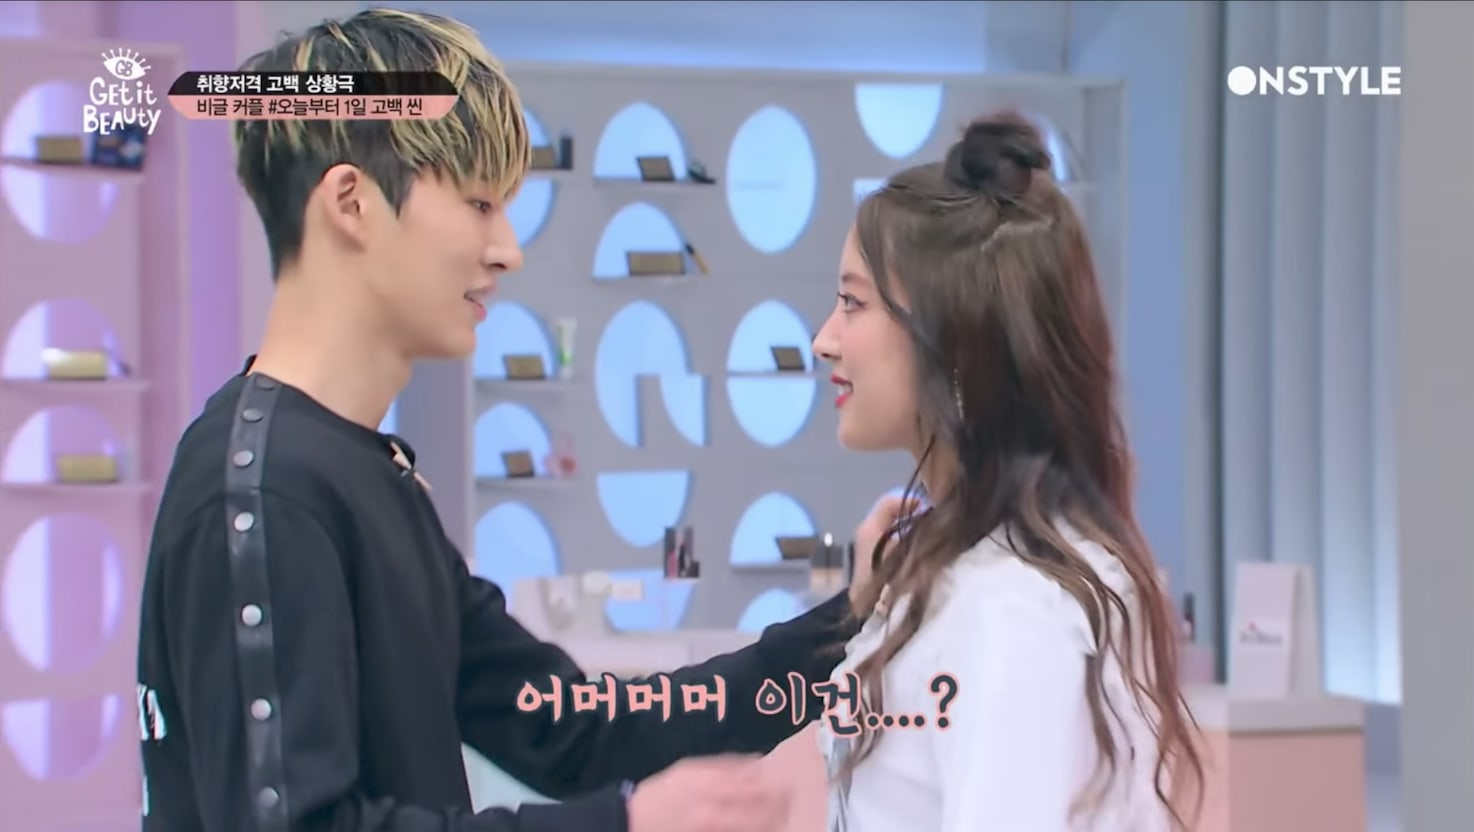 Watch: iKONs B.I Reenacts Fight My Way Kiss Scene With Lee Se Young